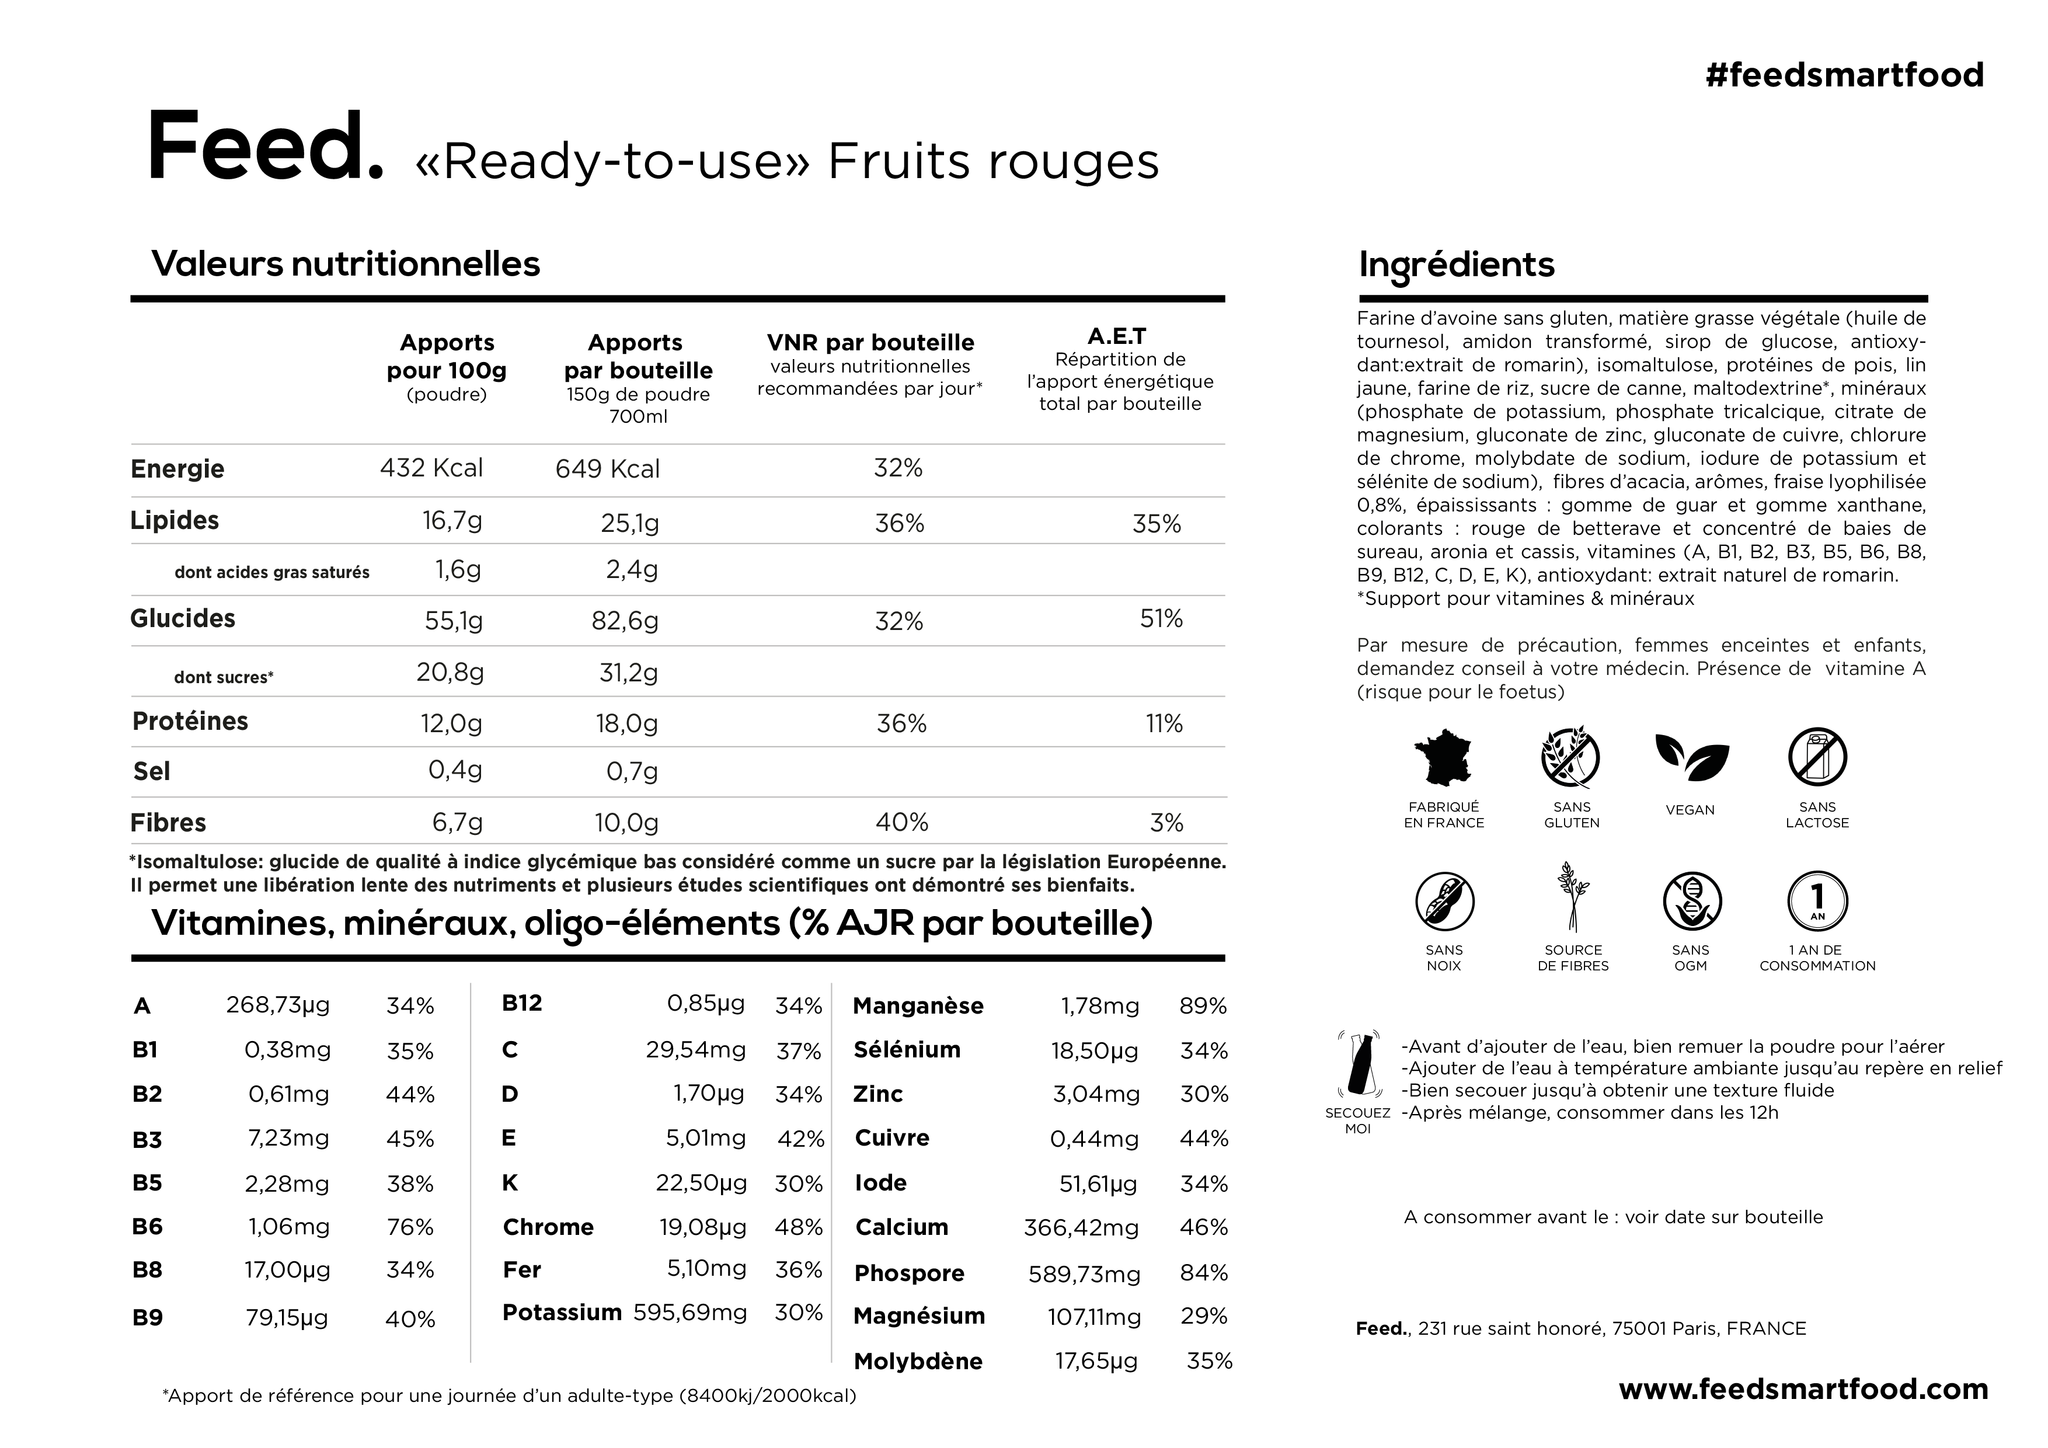 products/feed_tableau_nutritionnel_rtu_fruits_rouges_fr_8cf7bd01-b5b3-4452-8af7-1b37c7082c25.png